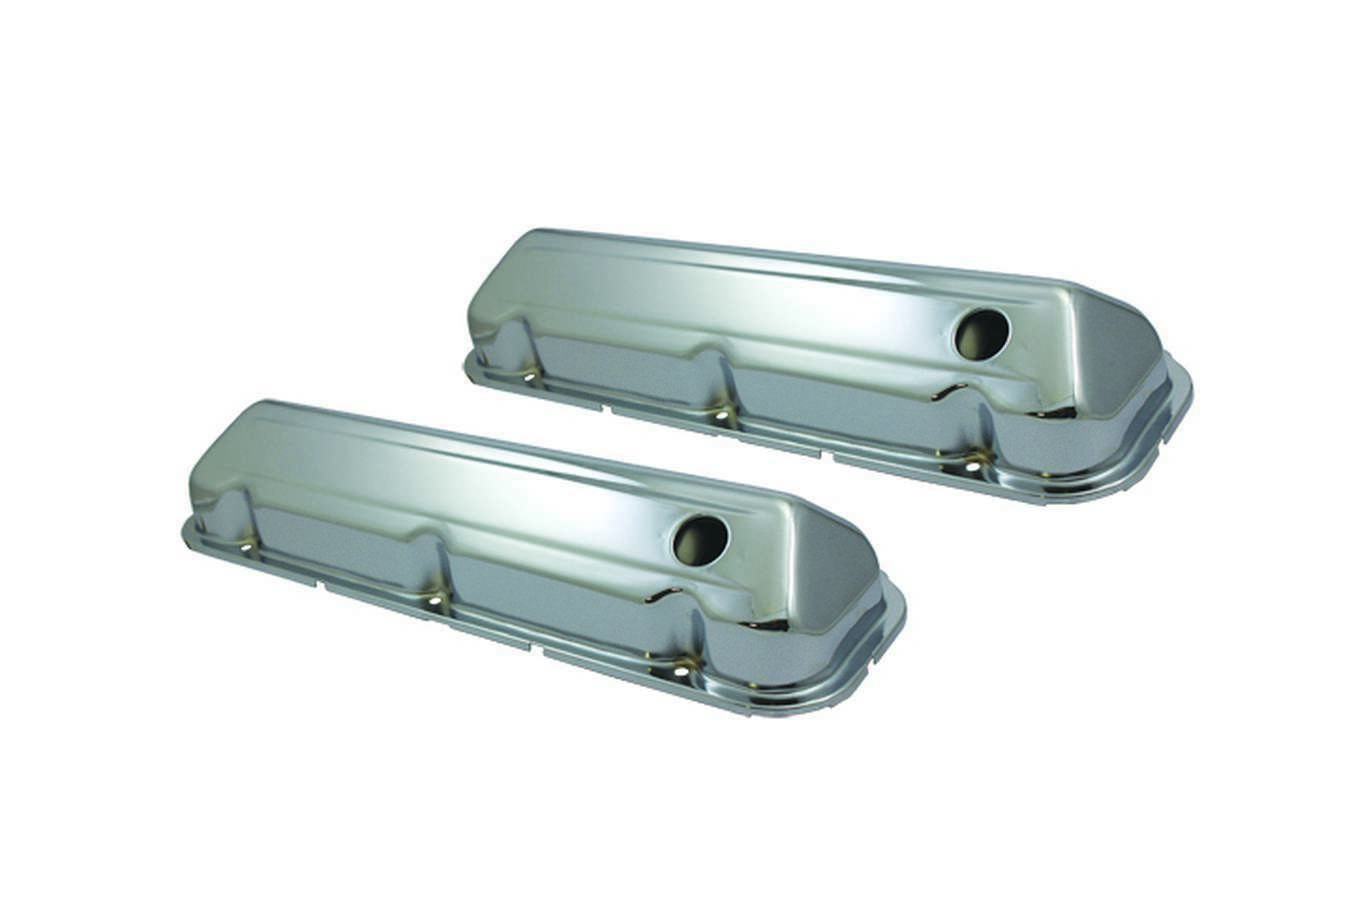 Specialty Products 8542 Valve Cover, Stock Height, Baffled, Breather Holes, Steel, Chrome, Big Block Ford, Pair